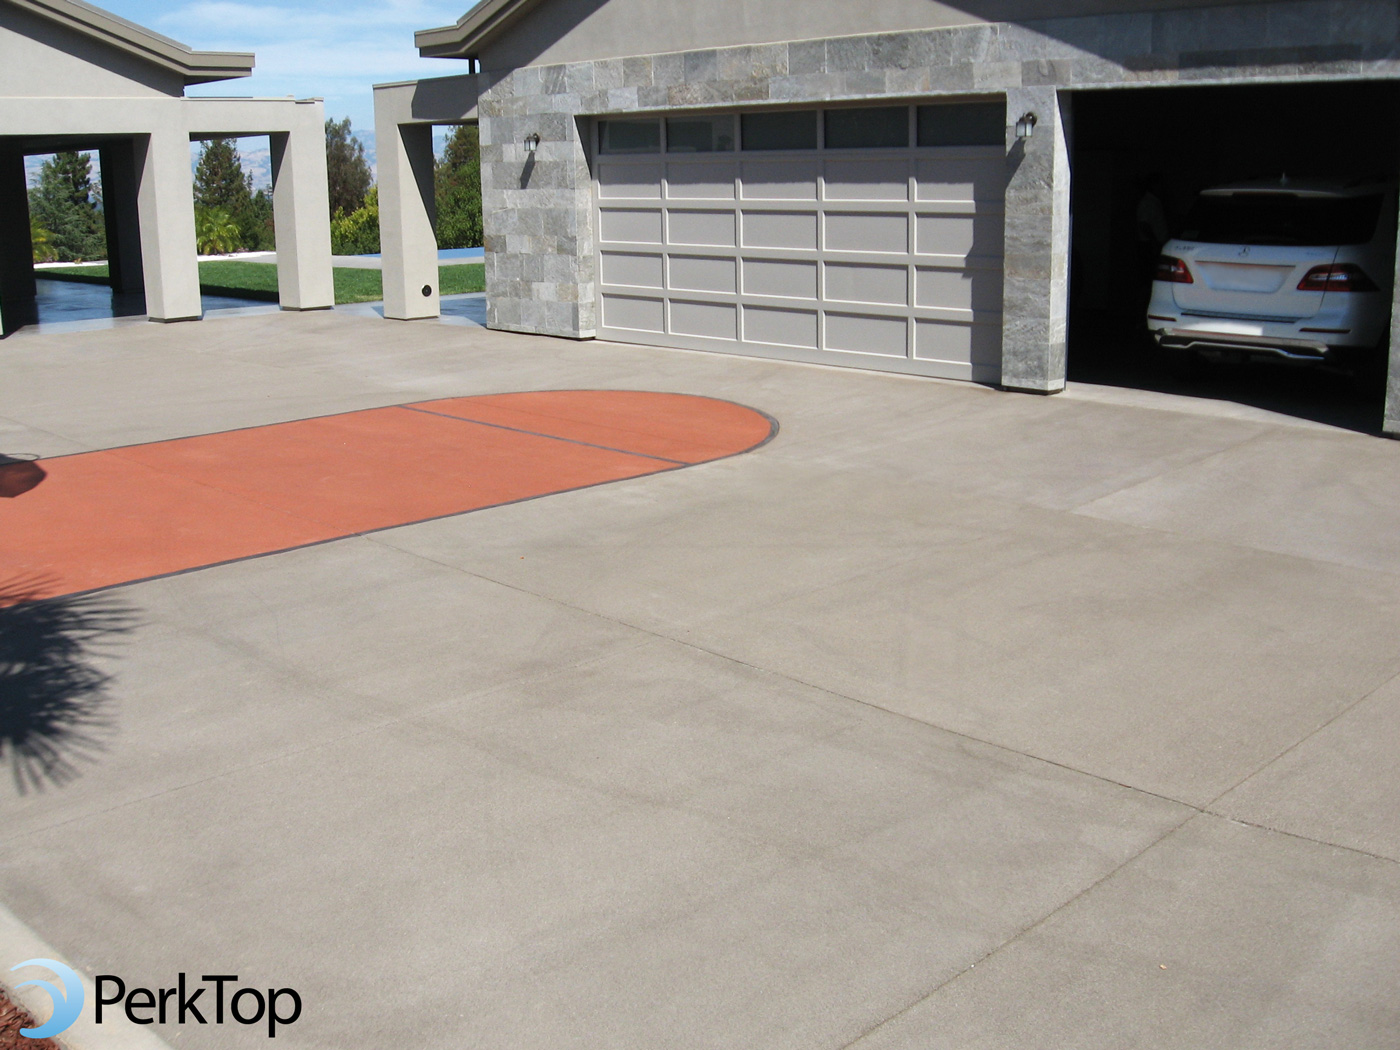 PerkTop-pervious-concrete-basketball-court-on-driveway